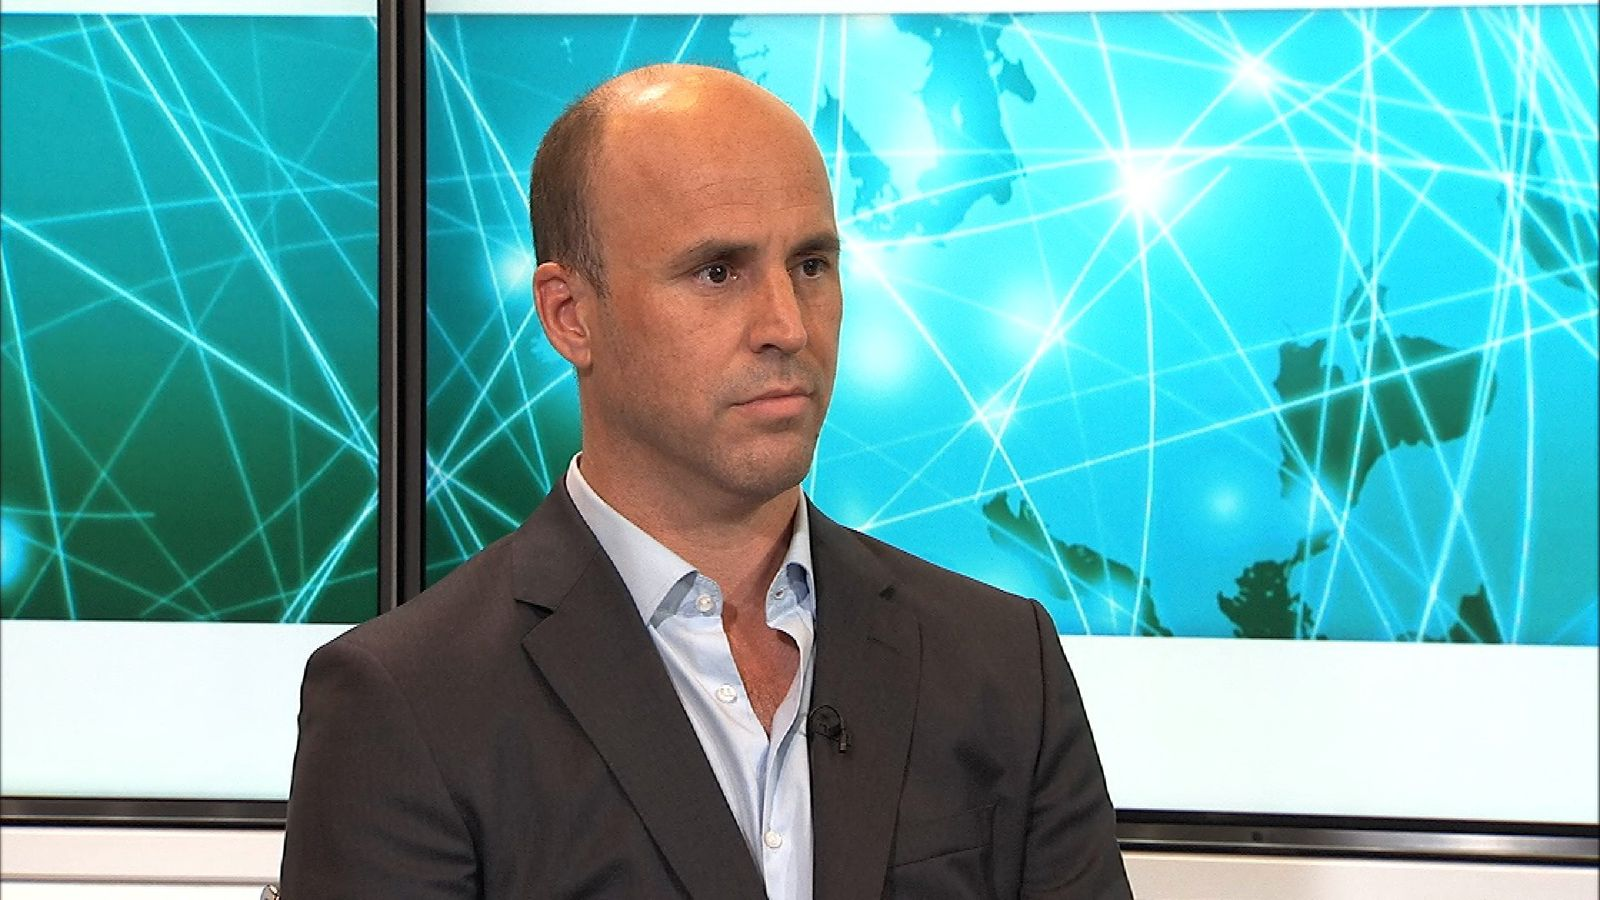 Rob Holmes is vice president of products at Proofpoint